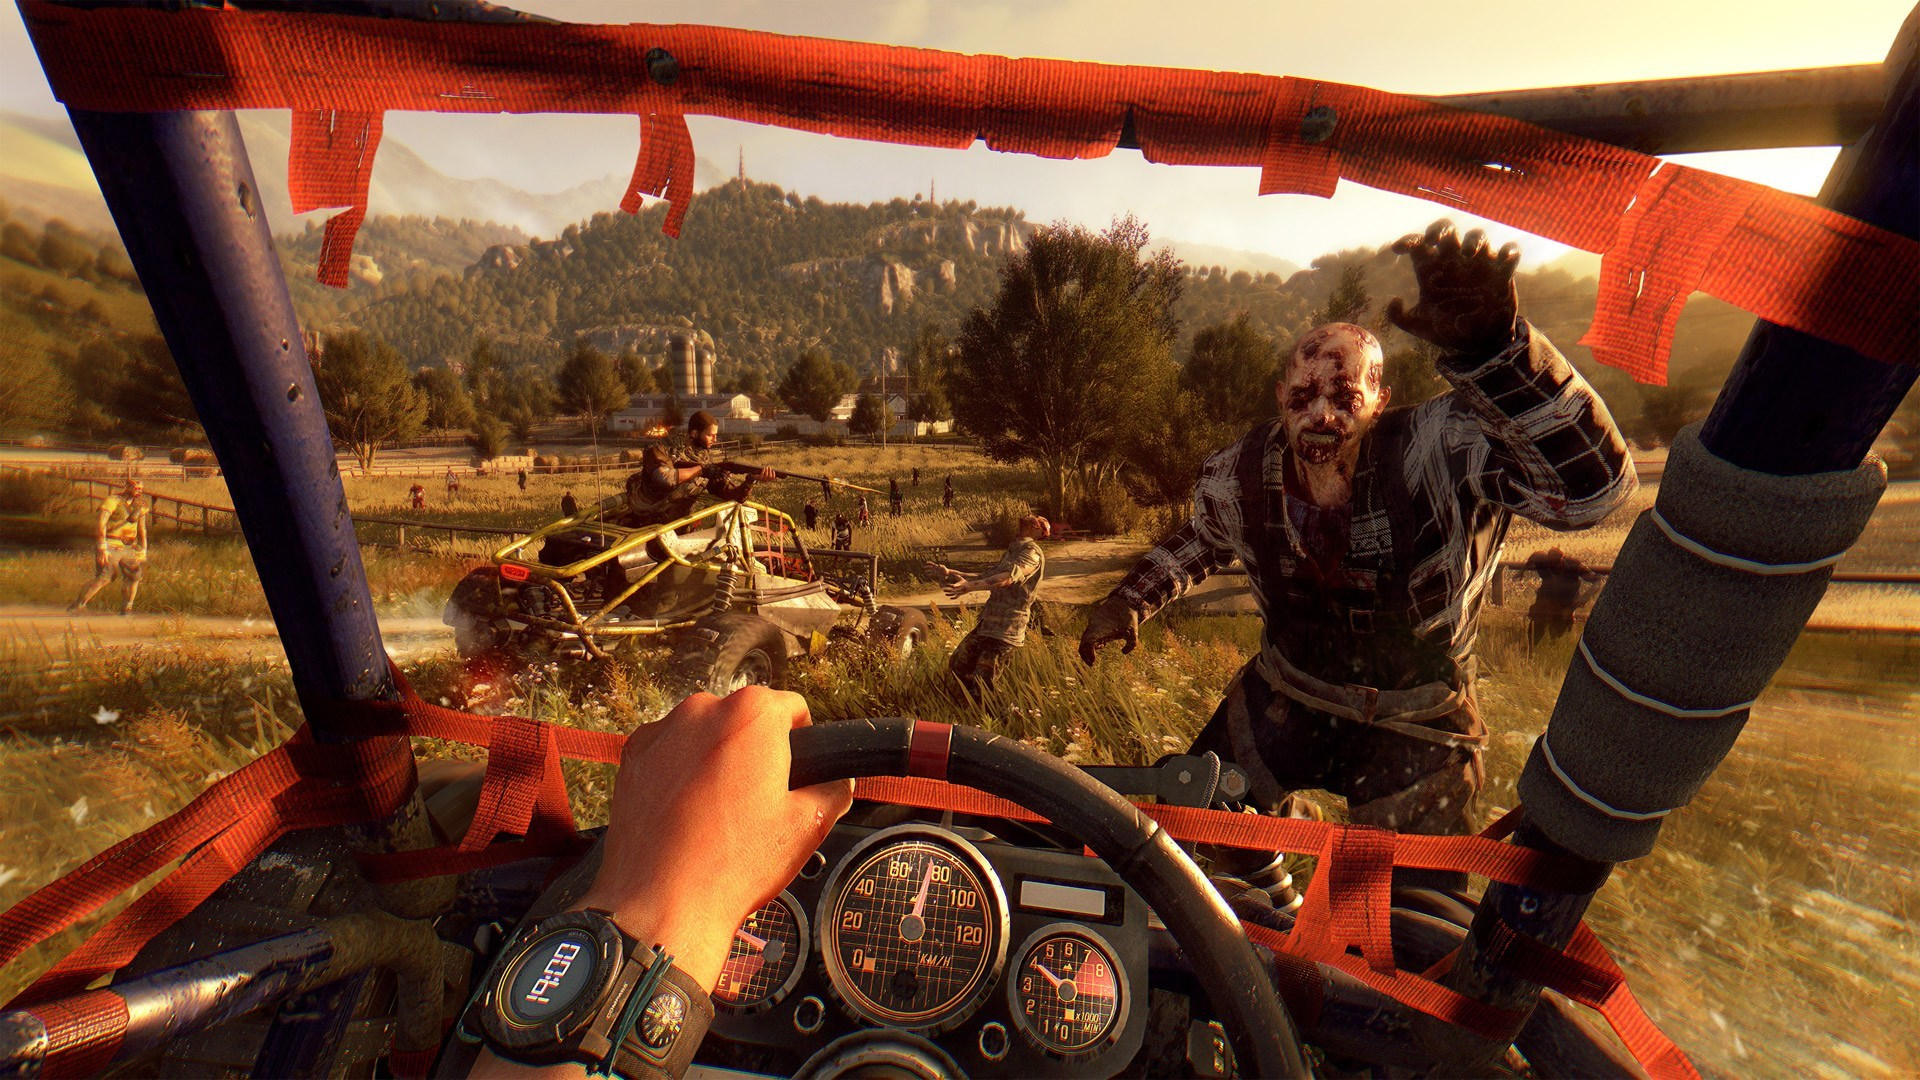 Hoy jugamos: 'Dying Light: The Following'